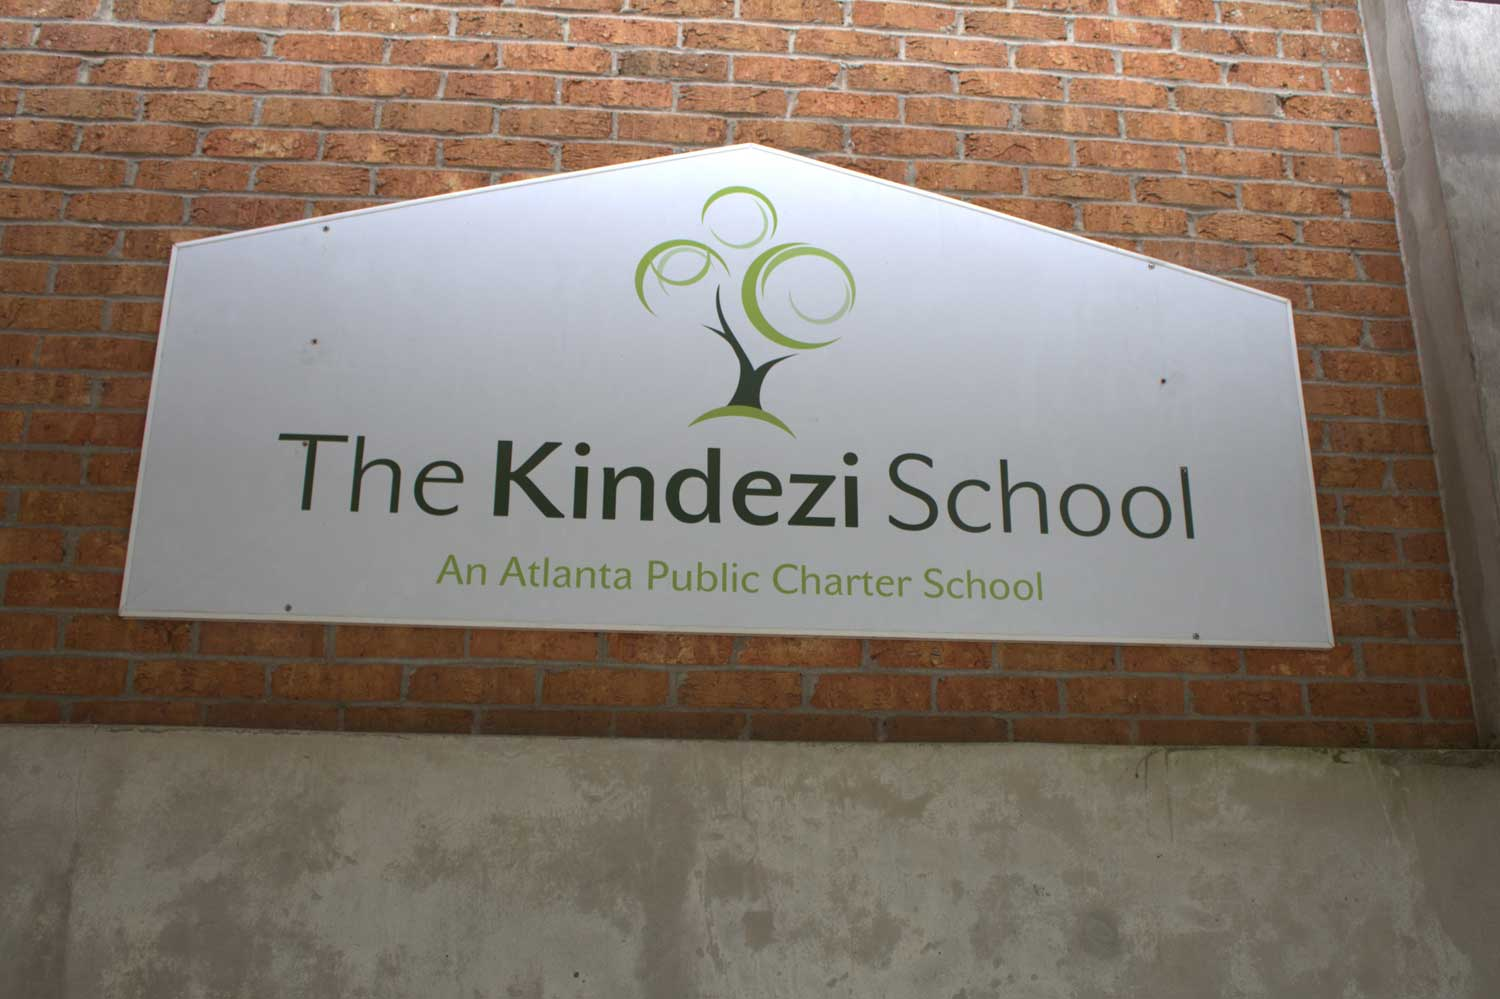 ga project exterior the thekindezischoolpainting suspendisse atlanta interior painting enim in school kindezi